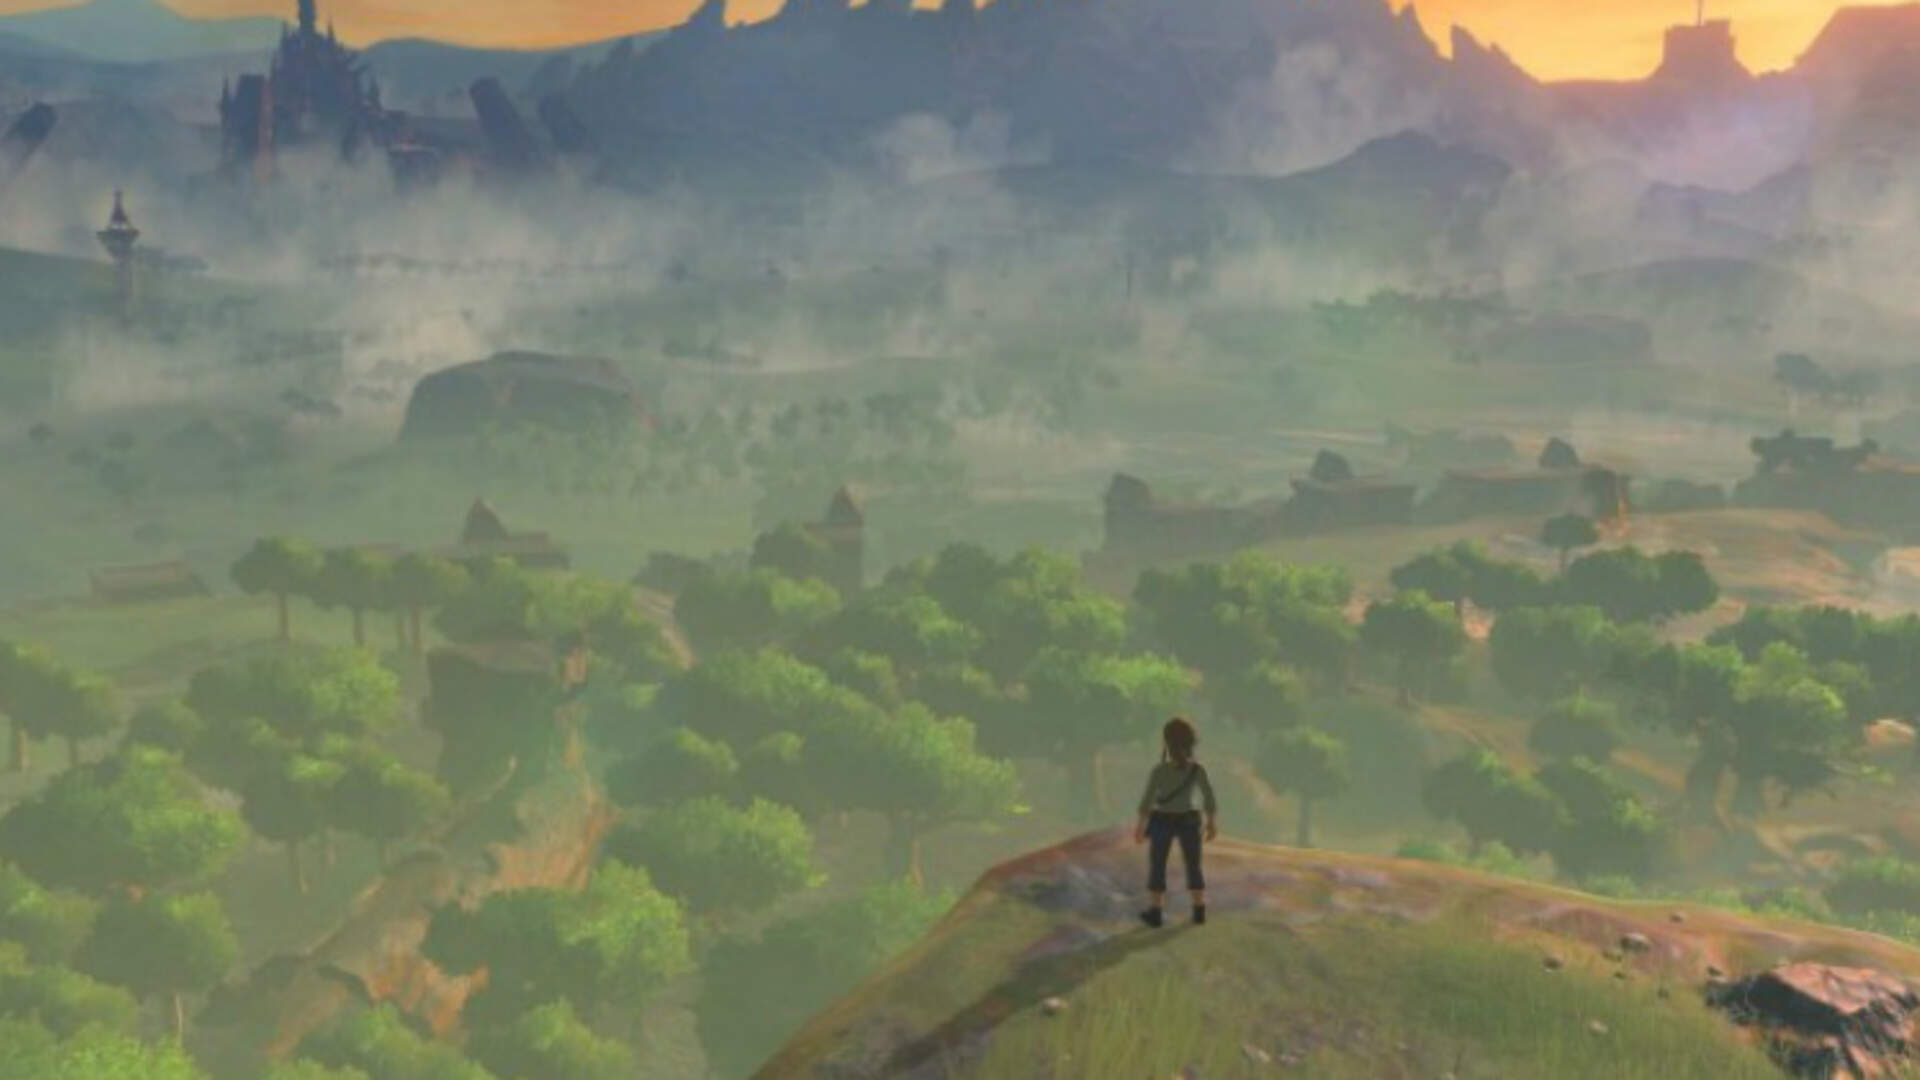 Zelda: Breath of the Wild on Switch and Wii U May Land in Summer 2017 [Report]